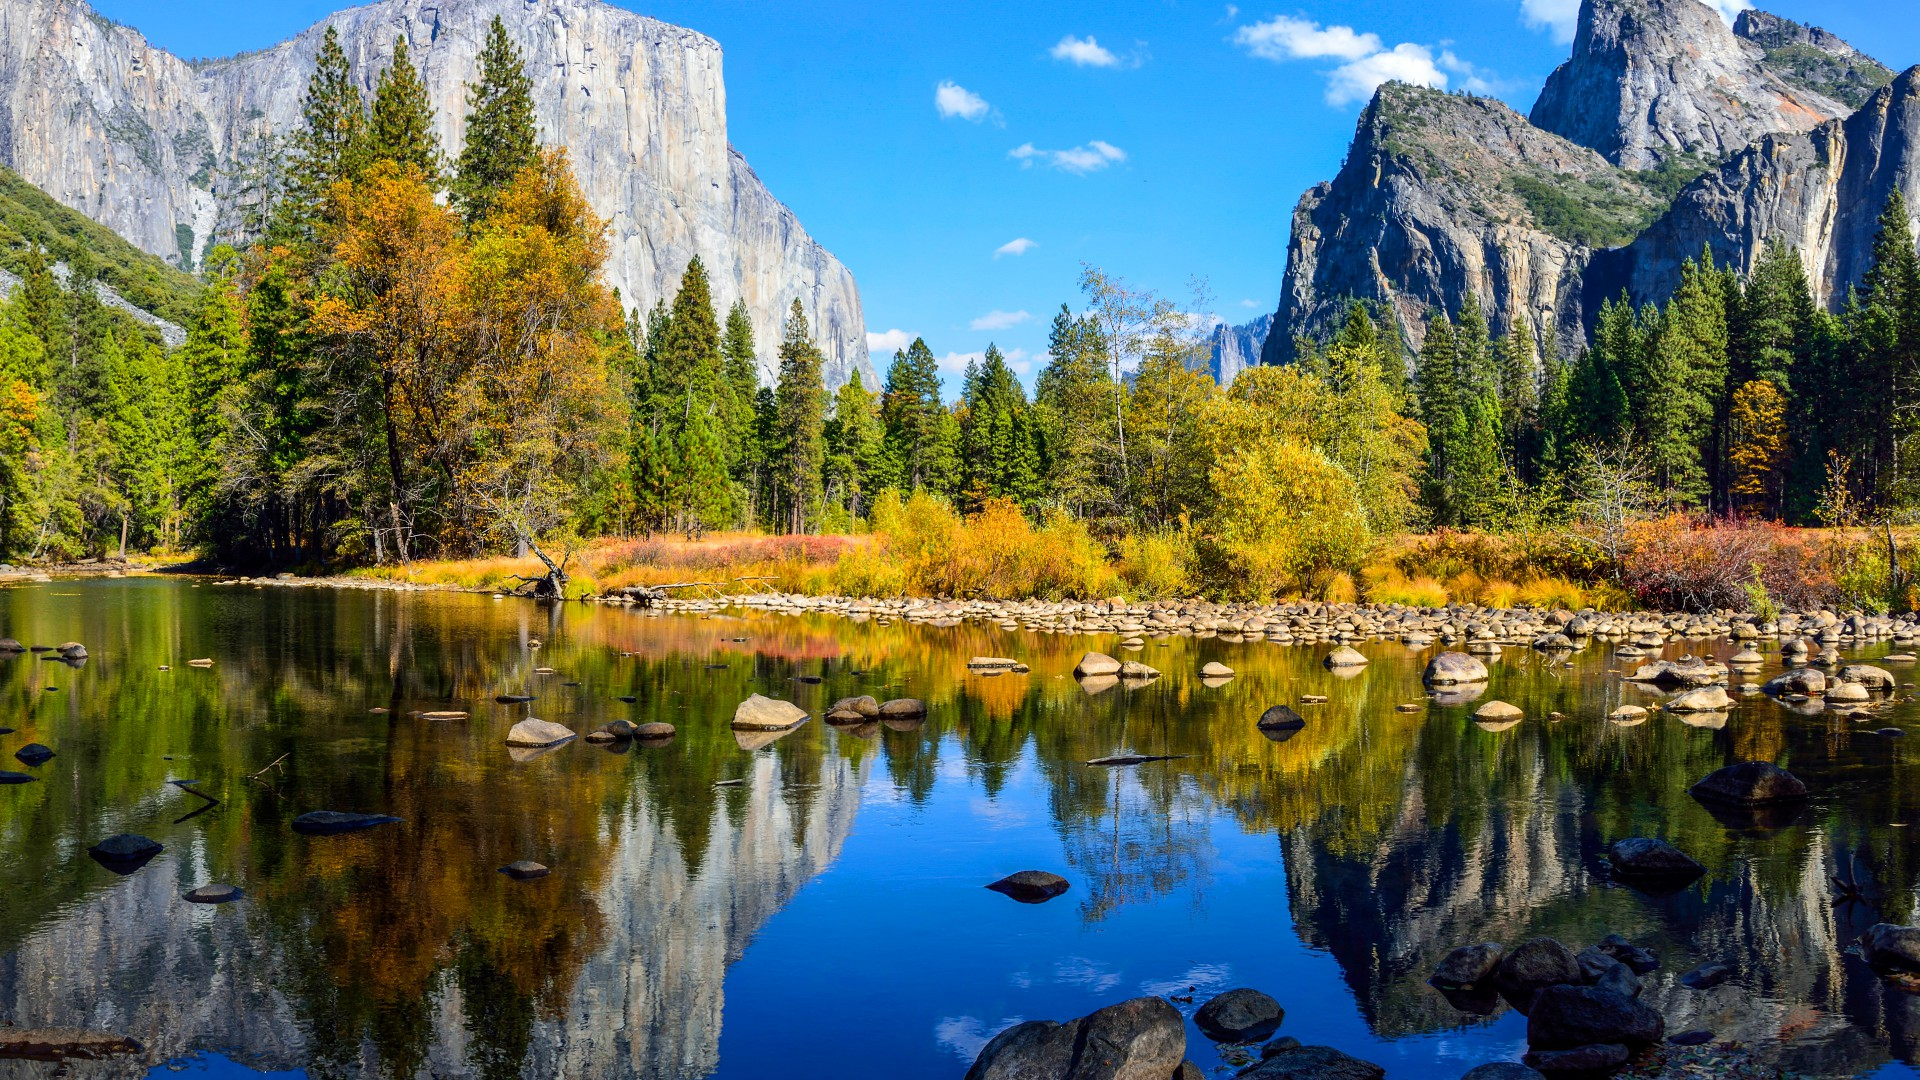 Yosemite, 5k, 4k wallpaper, El Capitan, forest, OSX, apple, mountains, lake (horizontal)